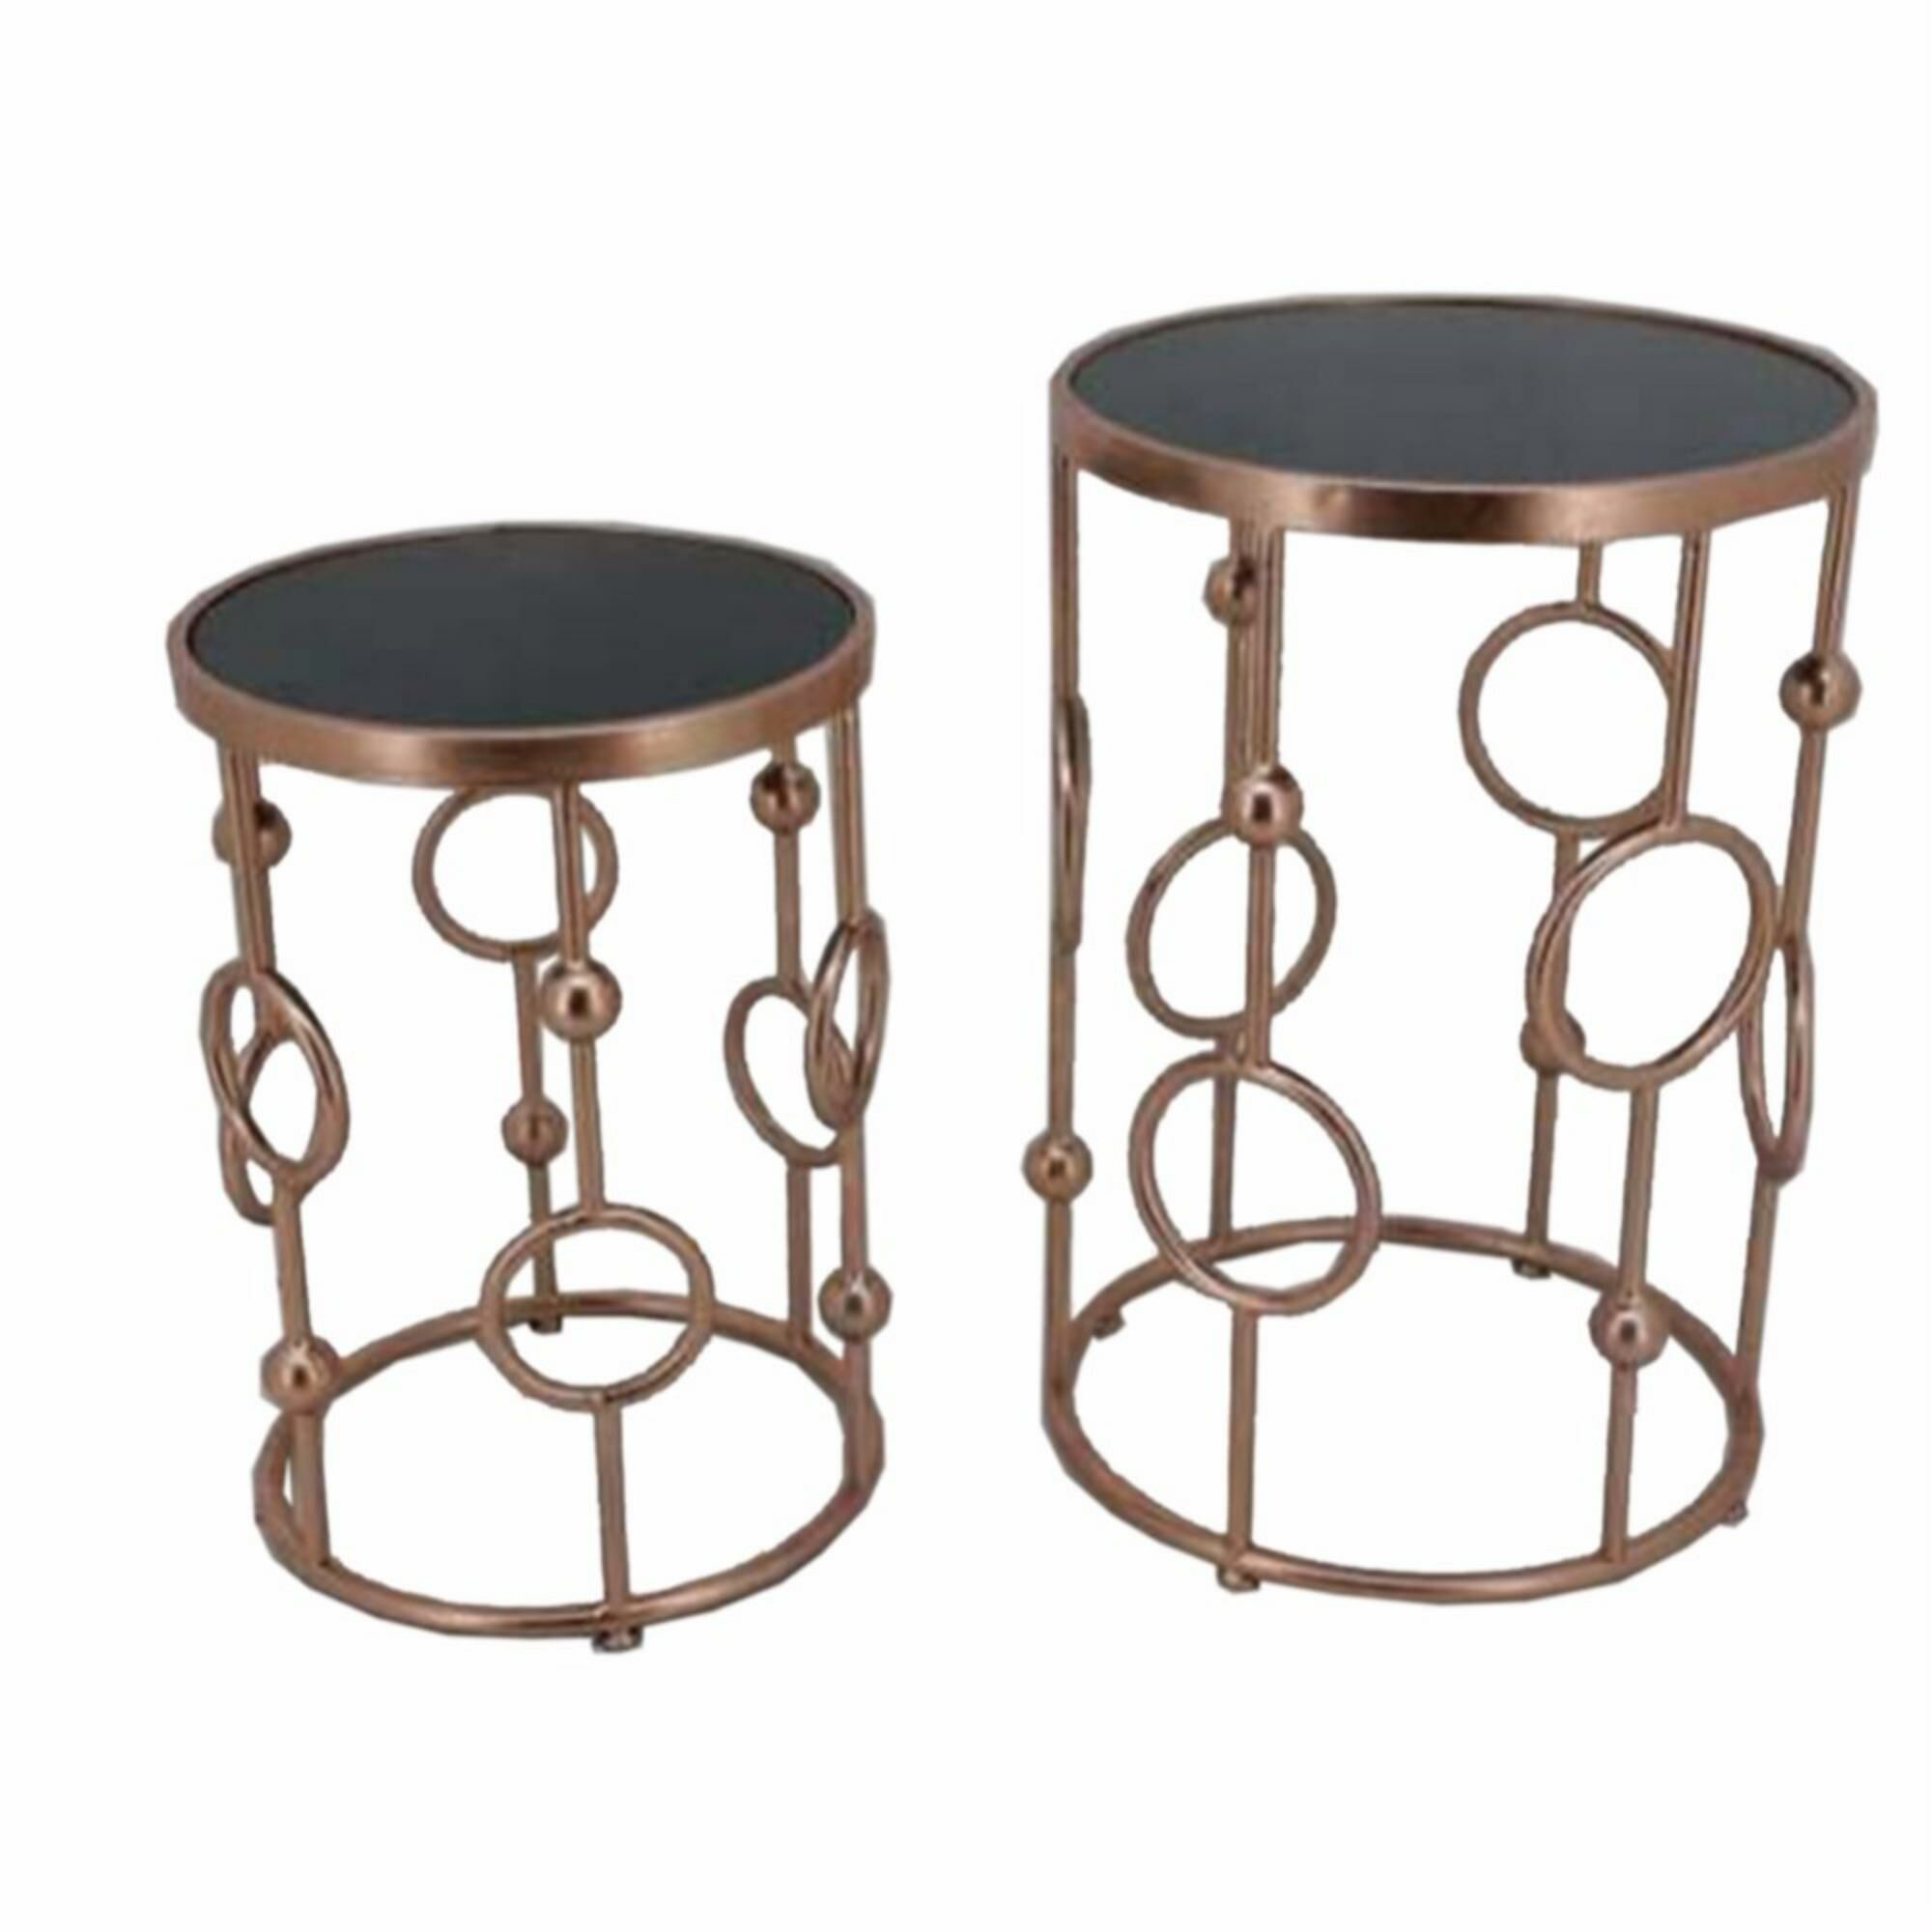 Frenette Metal 2 Piece Nesting Tables